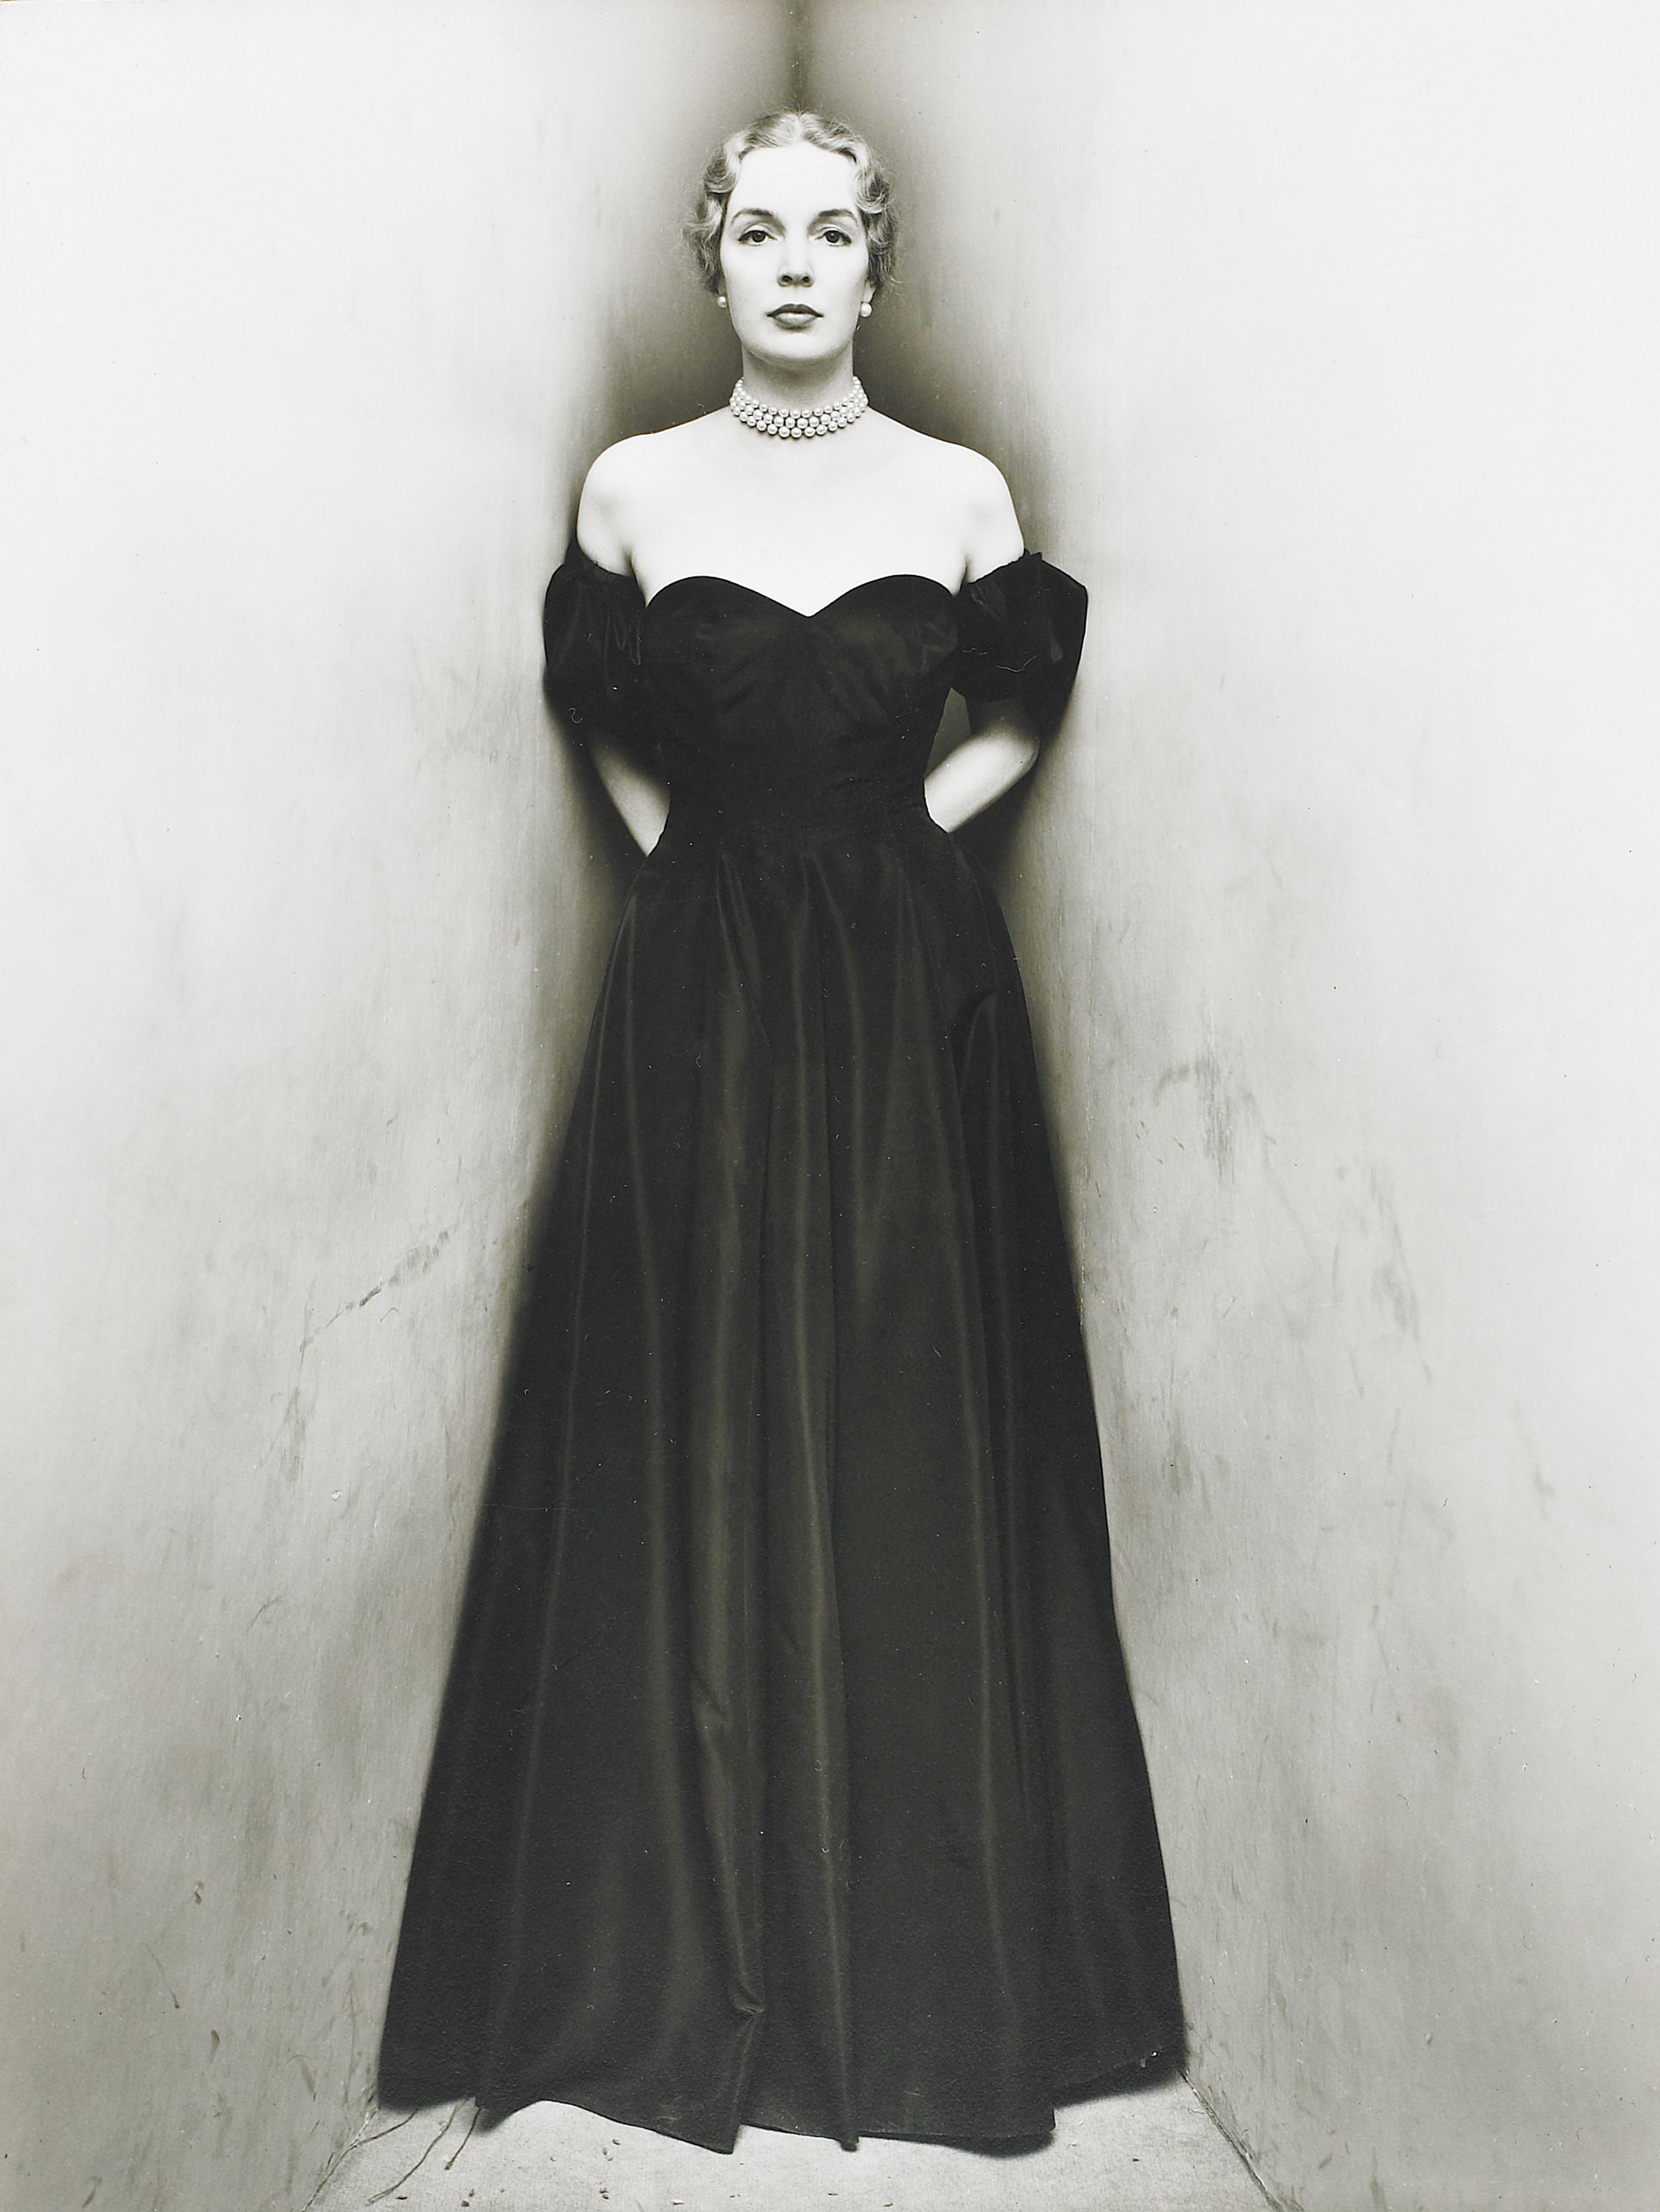 """Mrs. William Rhinelander Stewart, née Janet Newbold"" (1948), Irving Penn, American (1917-2009). Gelatin silver print. Museum purchase with funds provided by Members of the Museum. 1990.113."